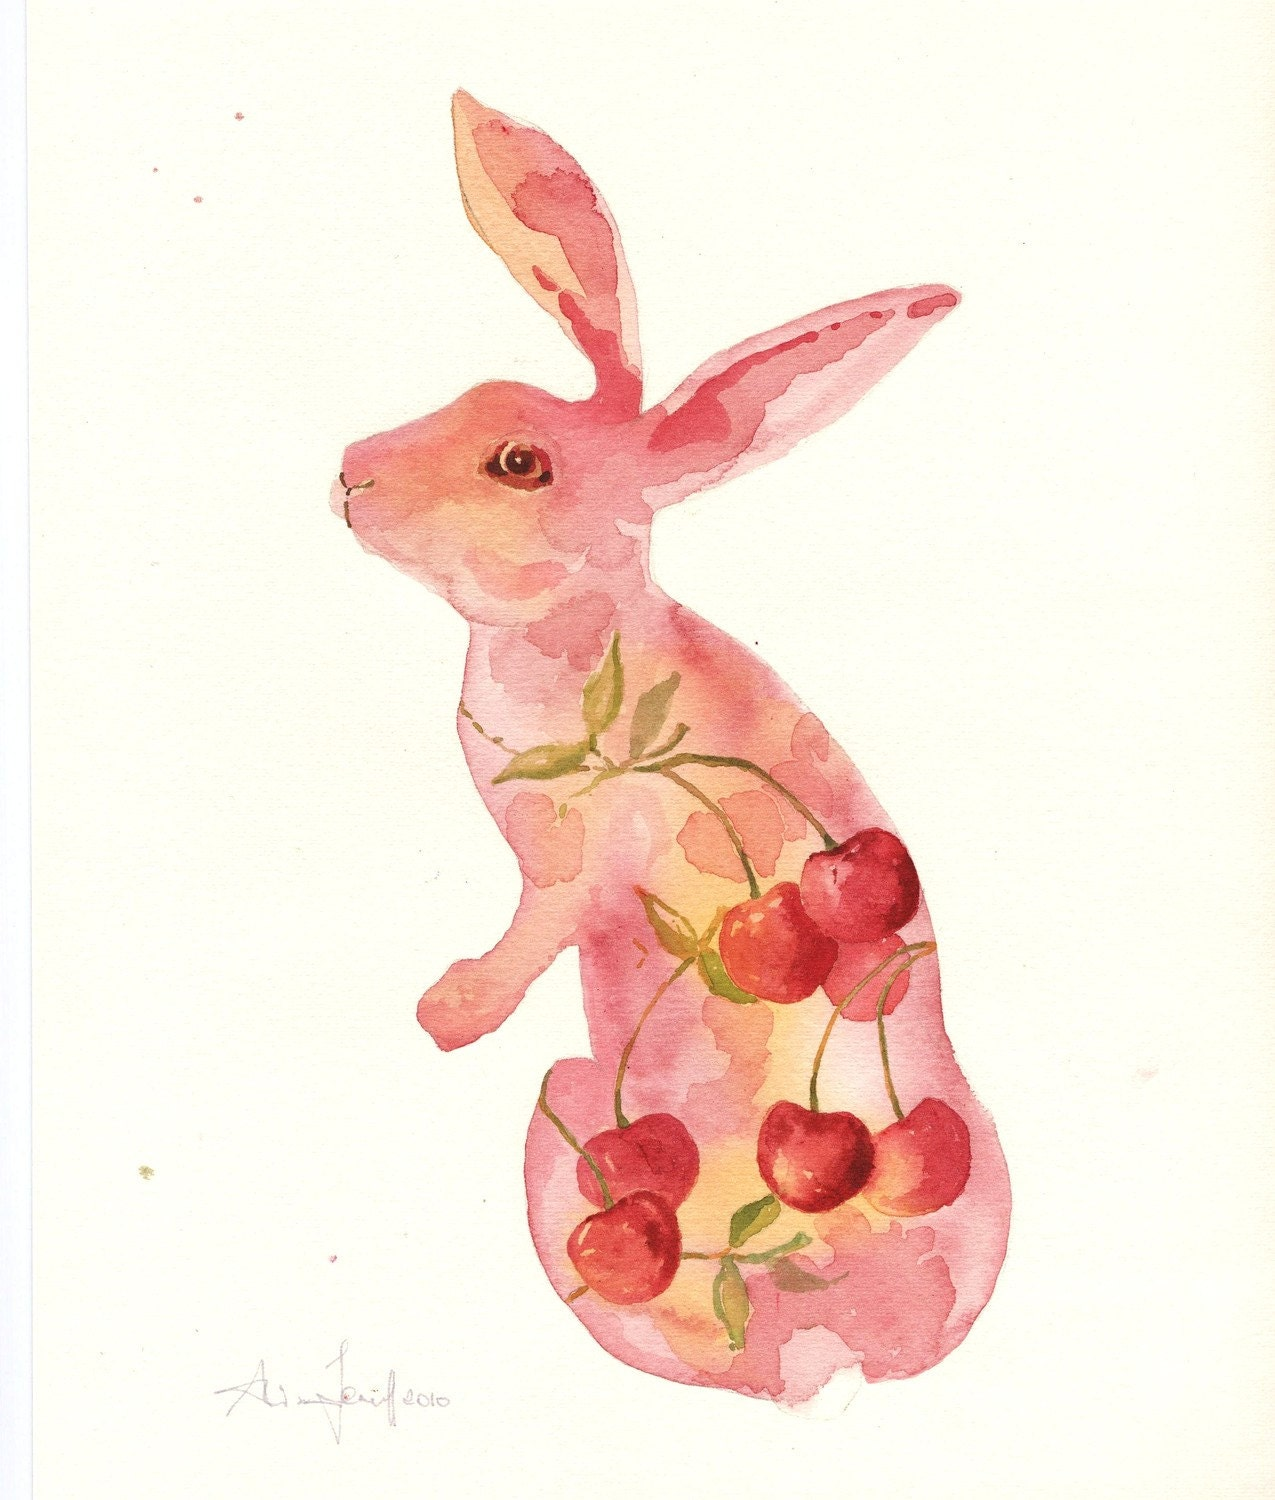 BUNNY Art - Pink Cherry Bunny - Fine Art Print 8x10 - BUY today SHIP today